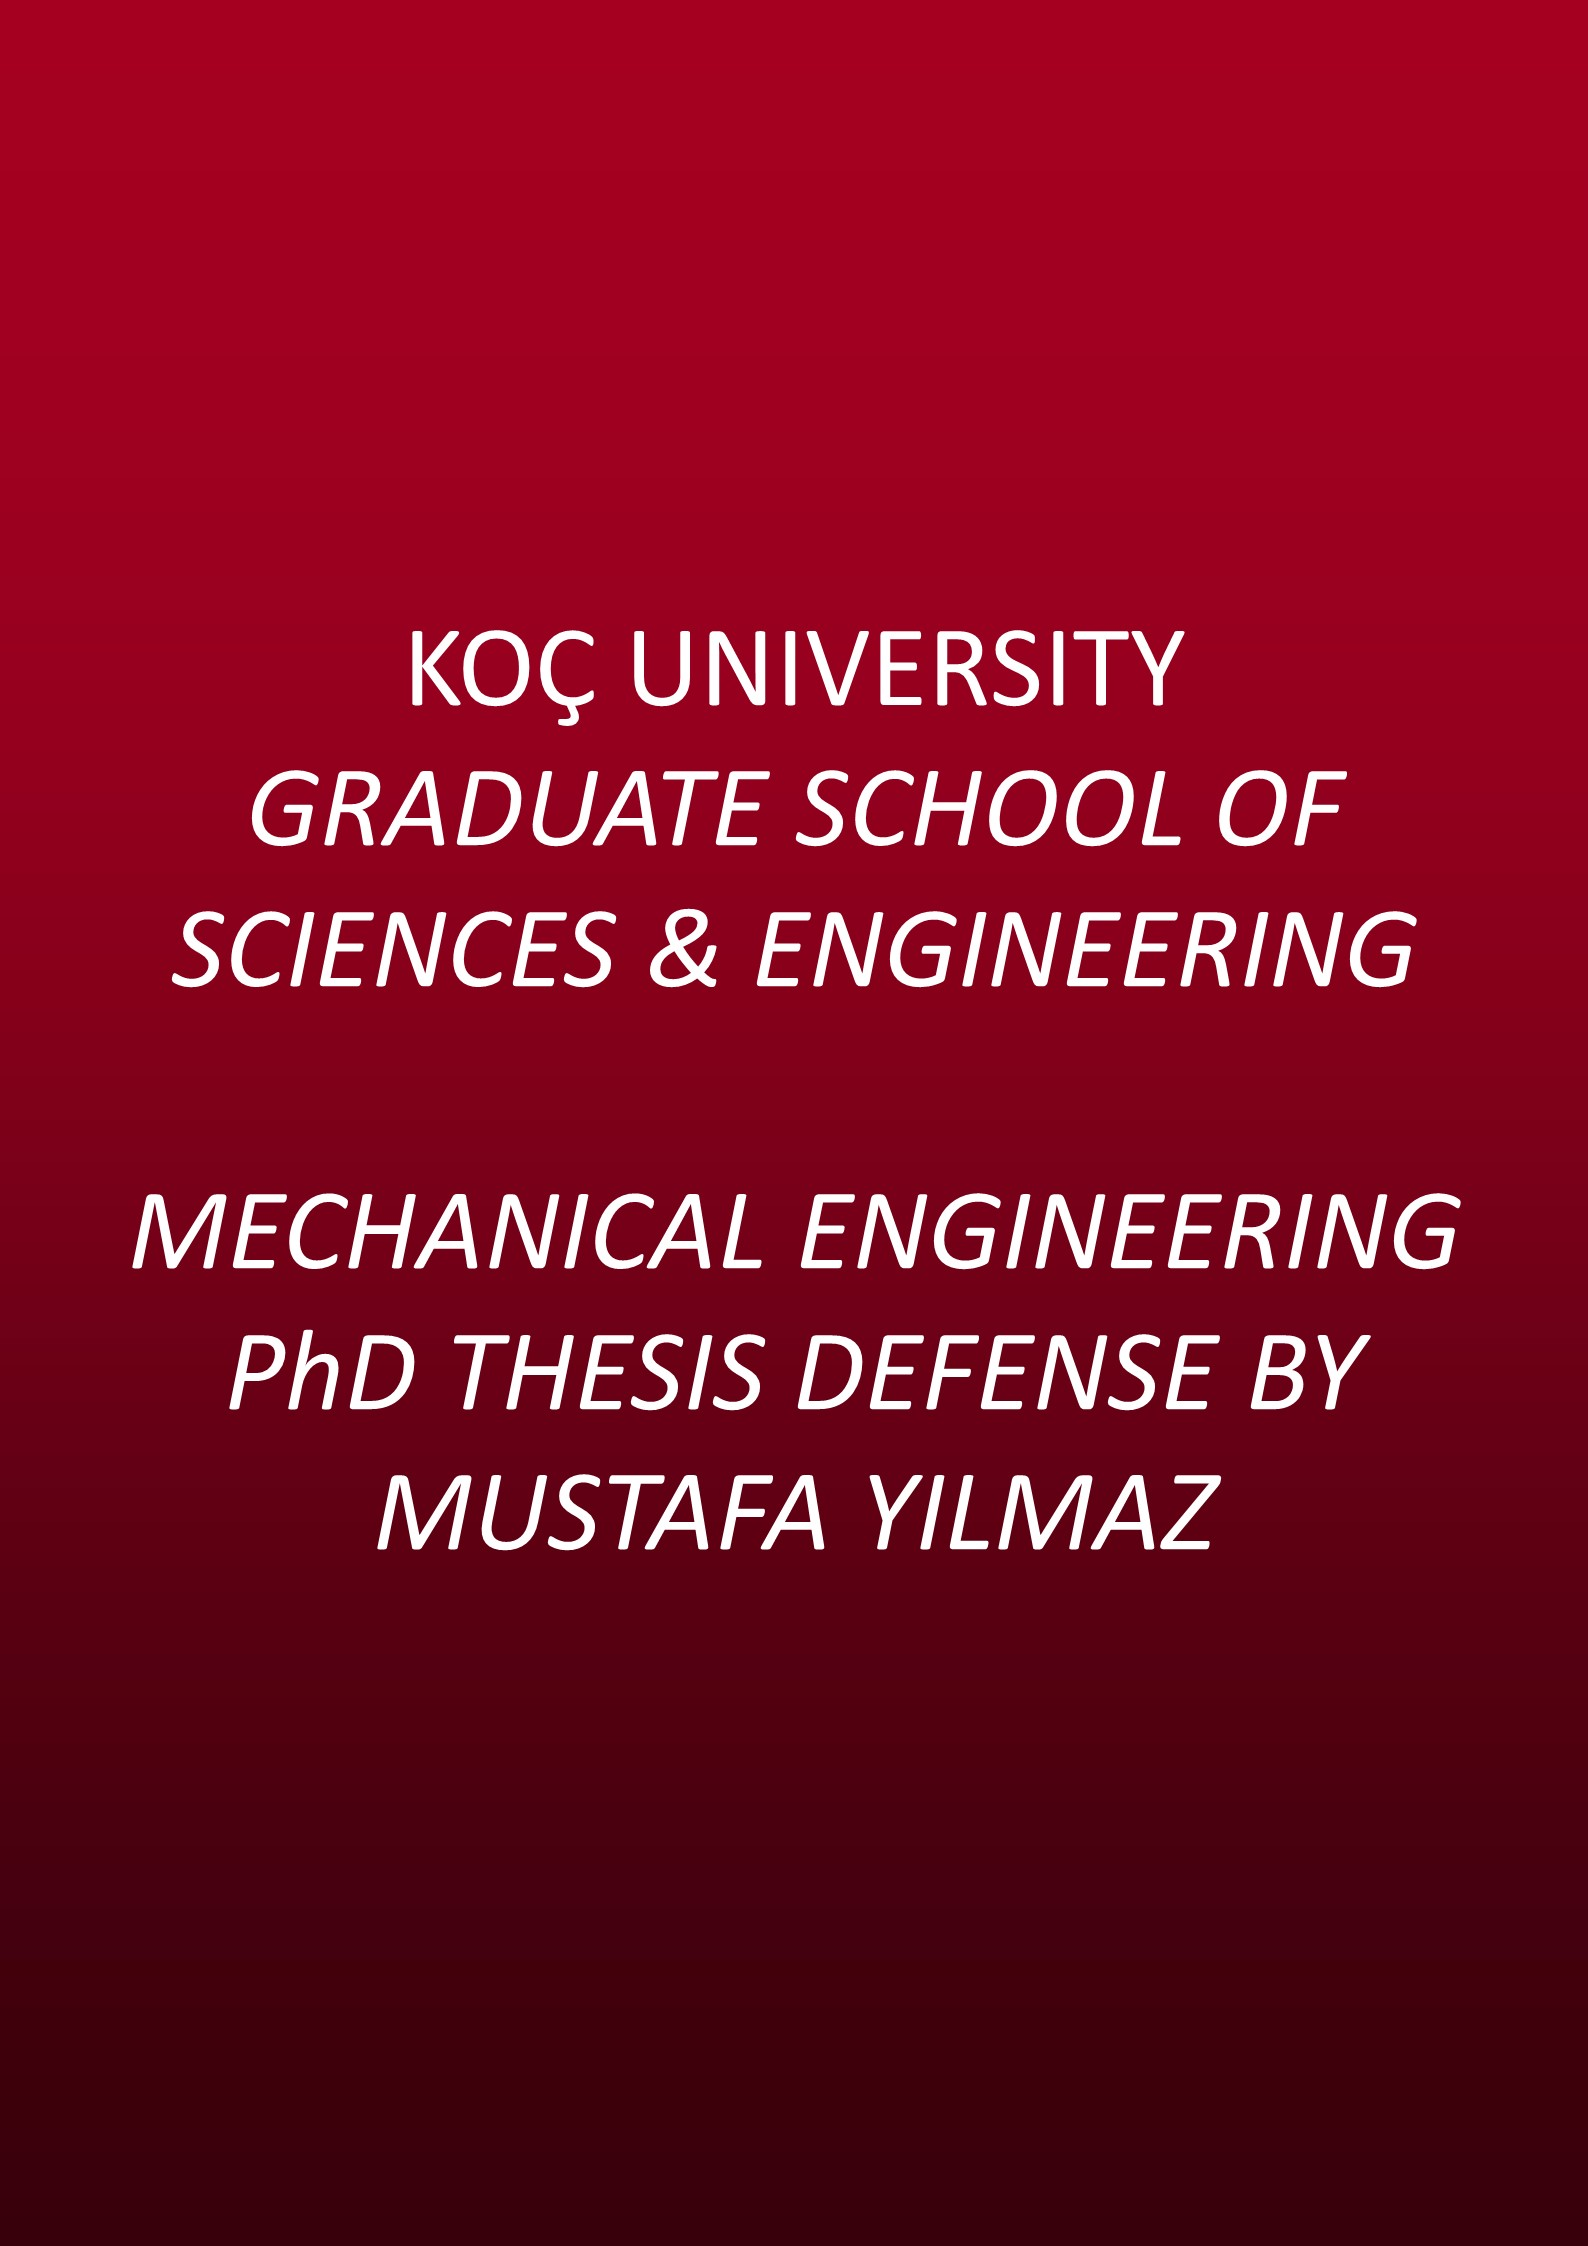 phd thesis in mechanical engineering All ms thesis committees must include at least two core mechanical engineering faculty thesis proposal the thesis proposal should be submitted by the student, to the me graduate adviser, as soon as possible after the student identifies their supervisor and before the student may begin registering for thesis credits (me 700).